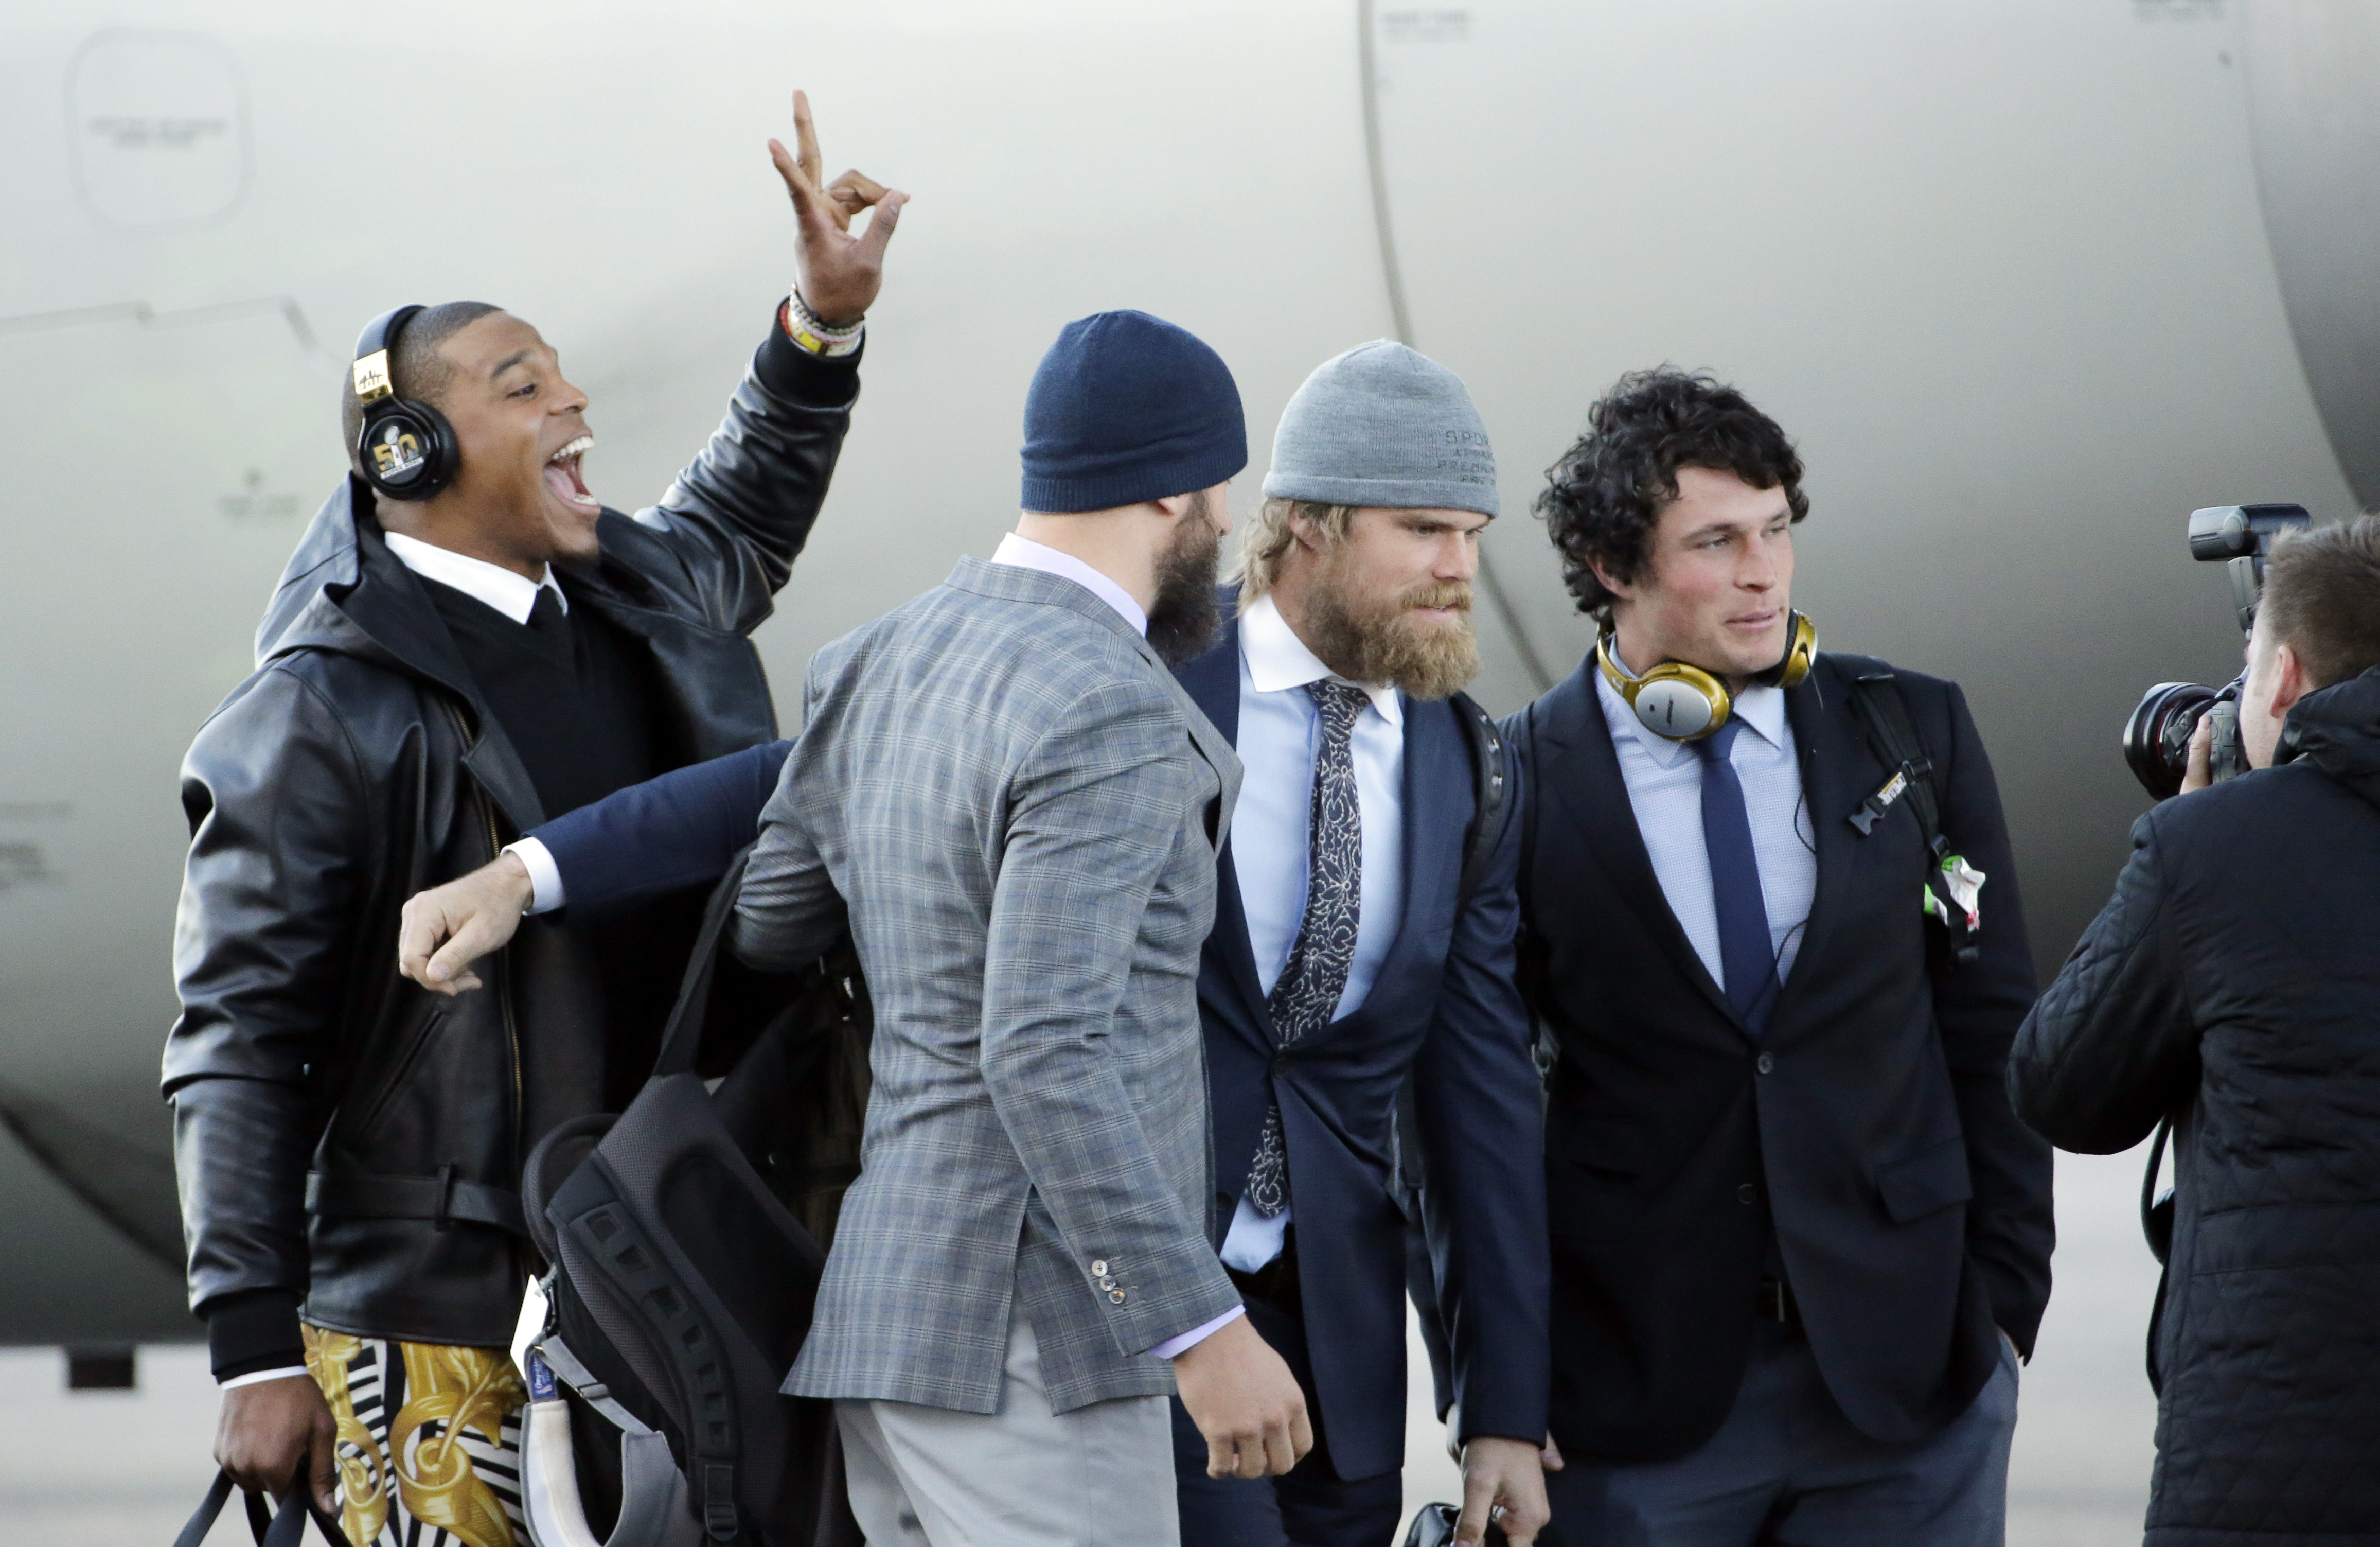 Carolina Panthers' Cam Newton jumps into a picture being taken of Luke Kuechly, right to left, Greg Olsen and Derek Anderson after getting off the plane at the Mineta San Jose International Airport as they arrive for the NFL Super Bowl football game Sunda